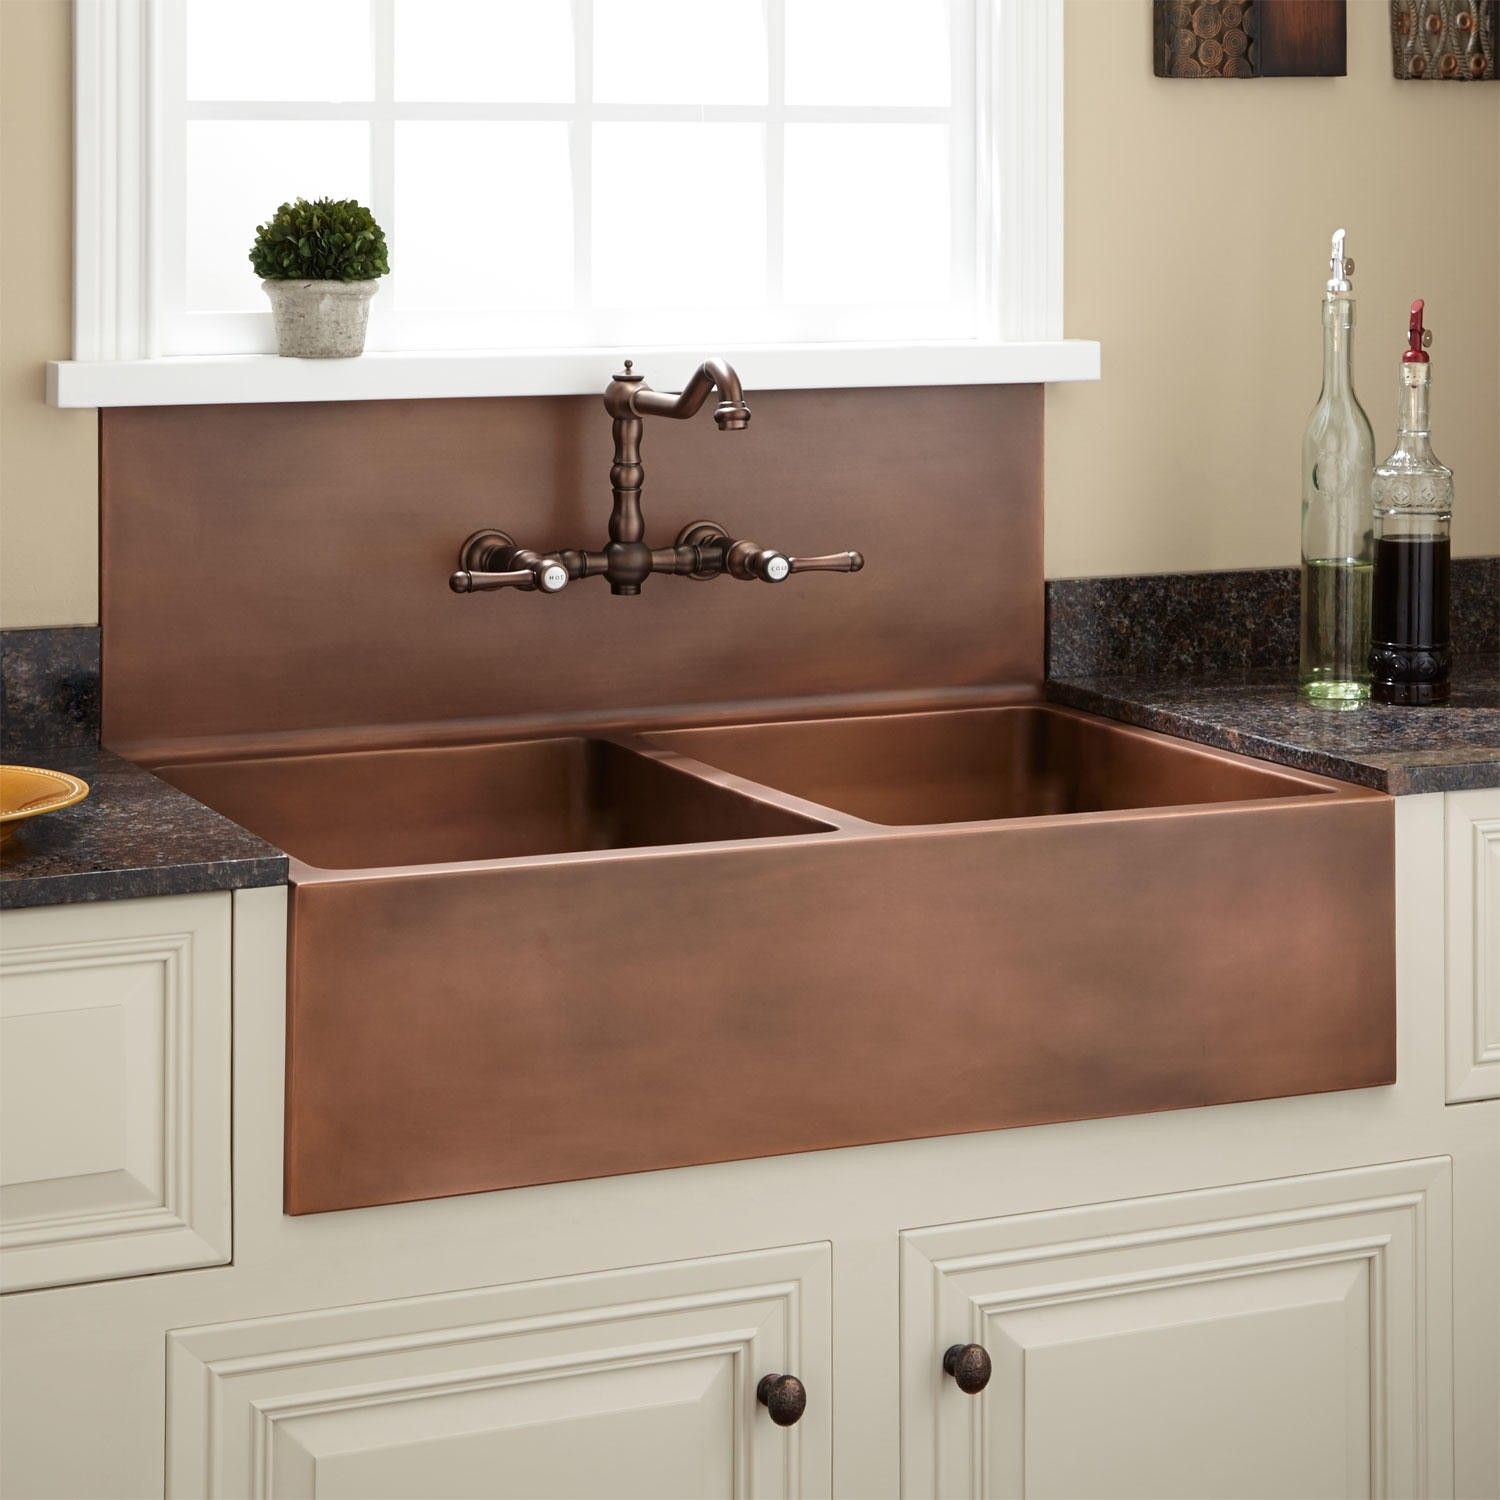 36 Christina Double Bowl Farmhouse Sink With High Backsplash Kitchen Copper Farmhouse Sinks Copper Kitchen Sink Double Farmhouse Sink